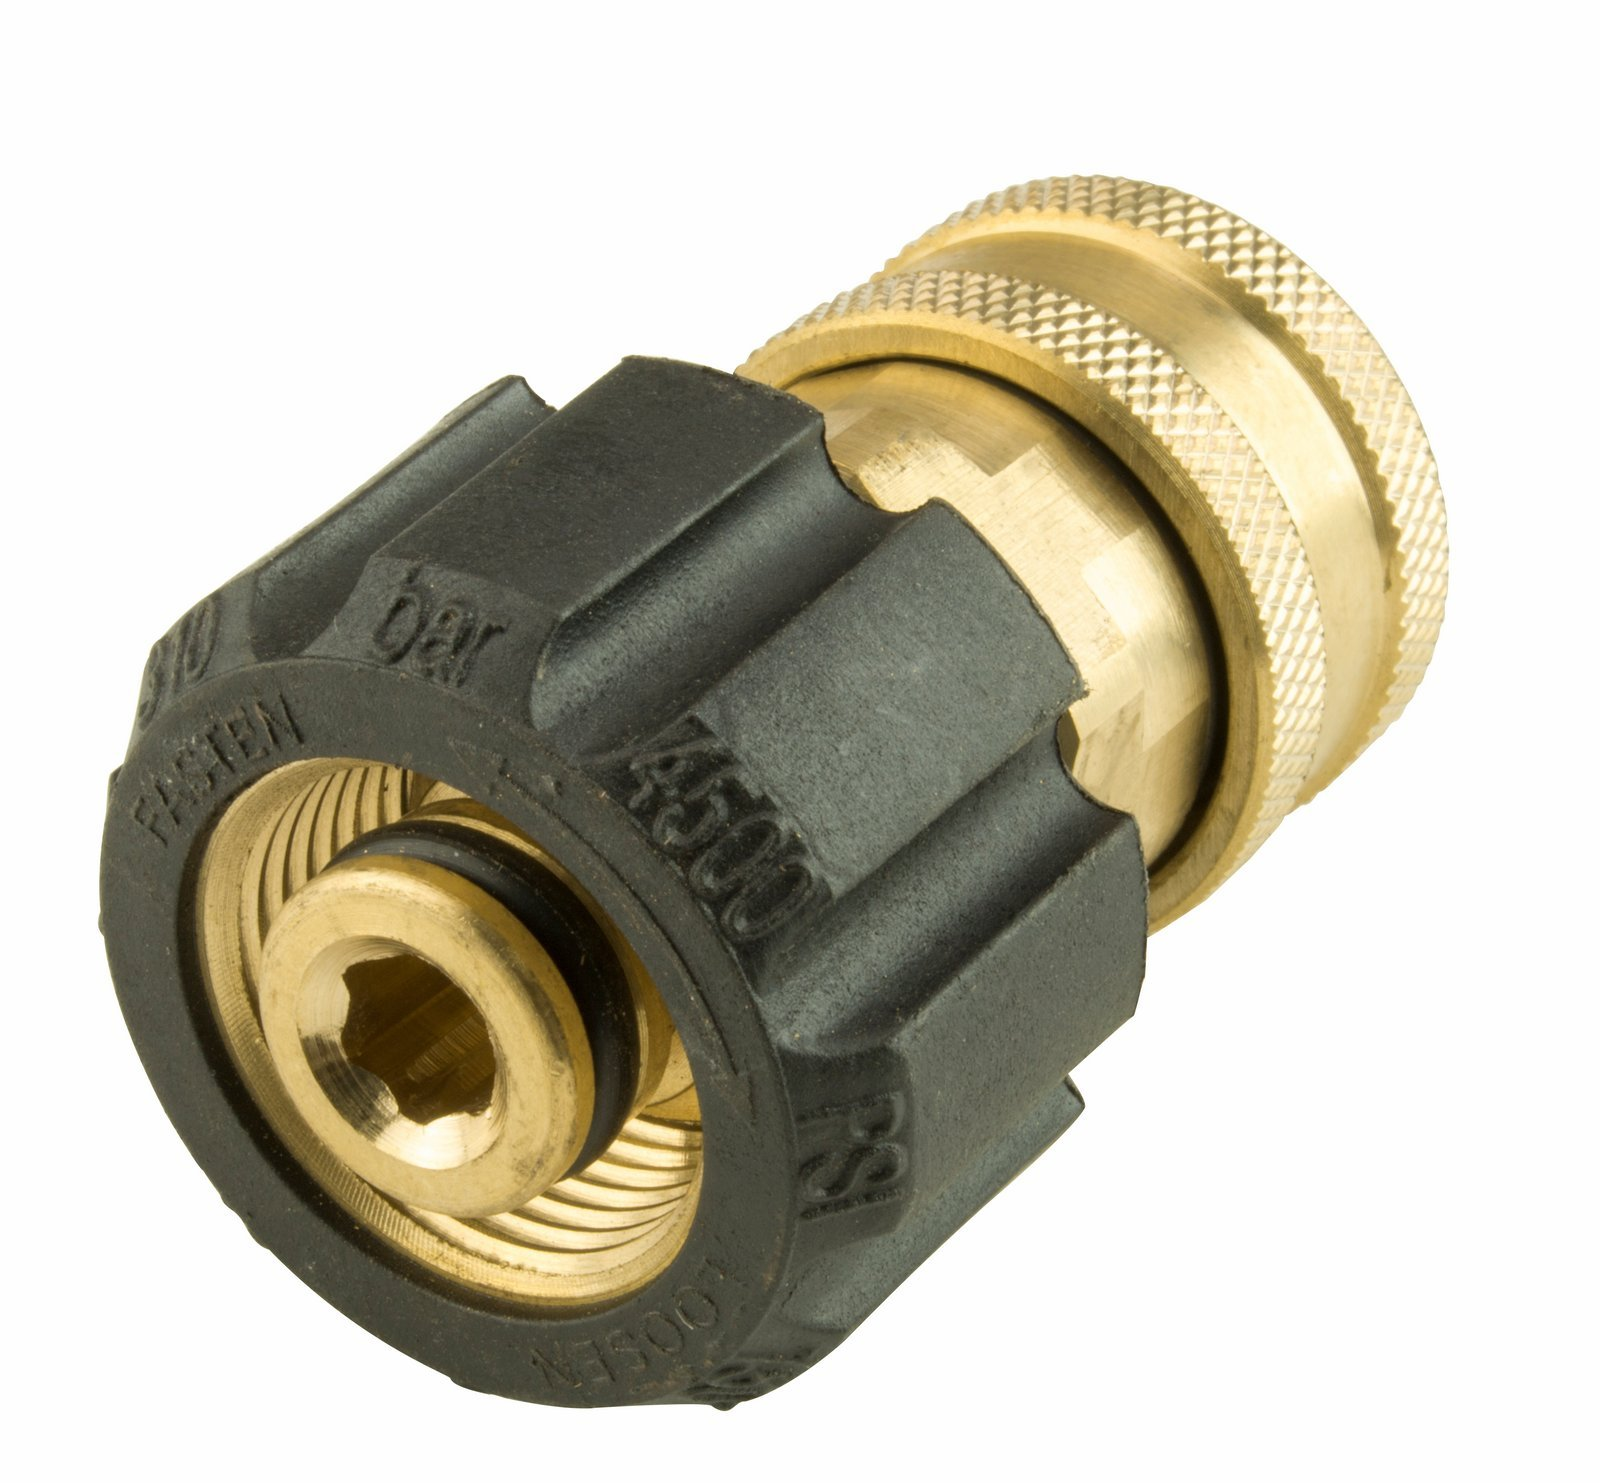 Erie Tools Pressure Washer Twist Connect M22 X 3/8'' Quick Disconnect 4500PSI High Pressure Brass Fitting with 300°F Max Temp